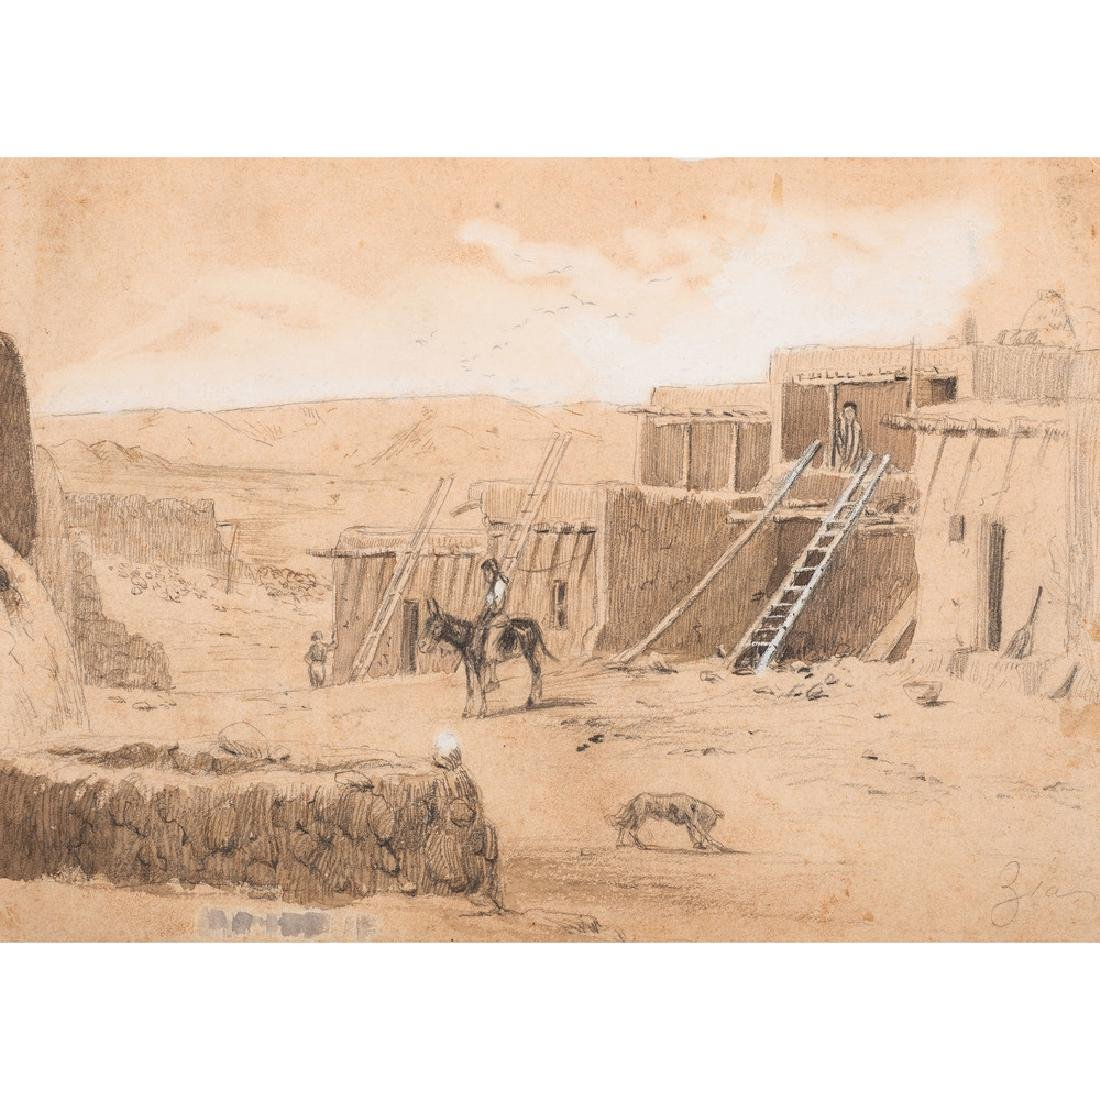 Pencil Drawing of a Zuni Reservation Scene, Style of